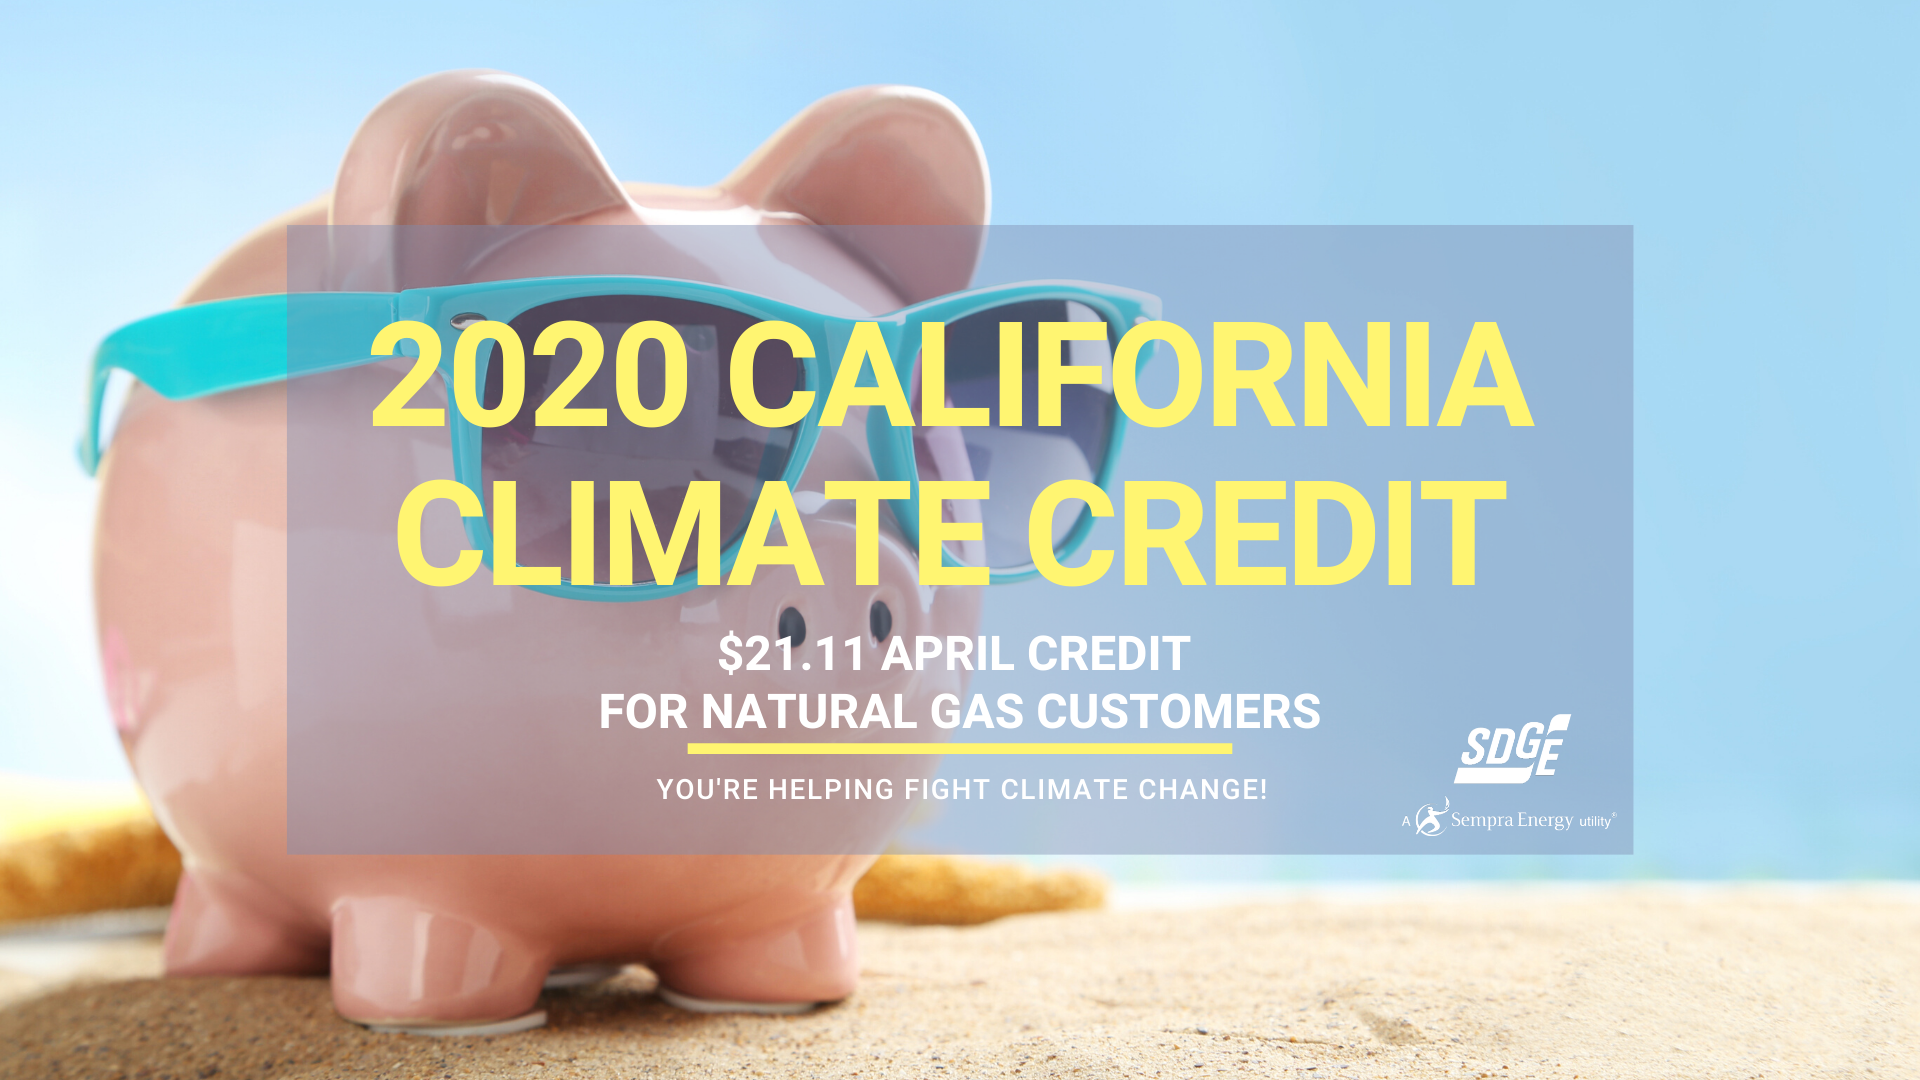 California Climate Credit to offset April bills for SDG&E natural gas customers by $21.11 in credit